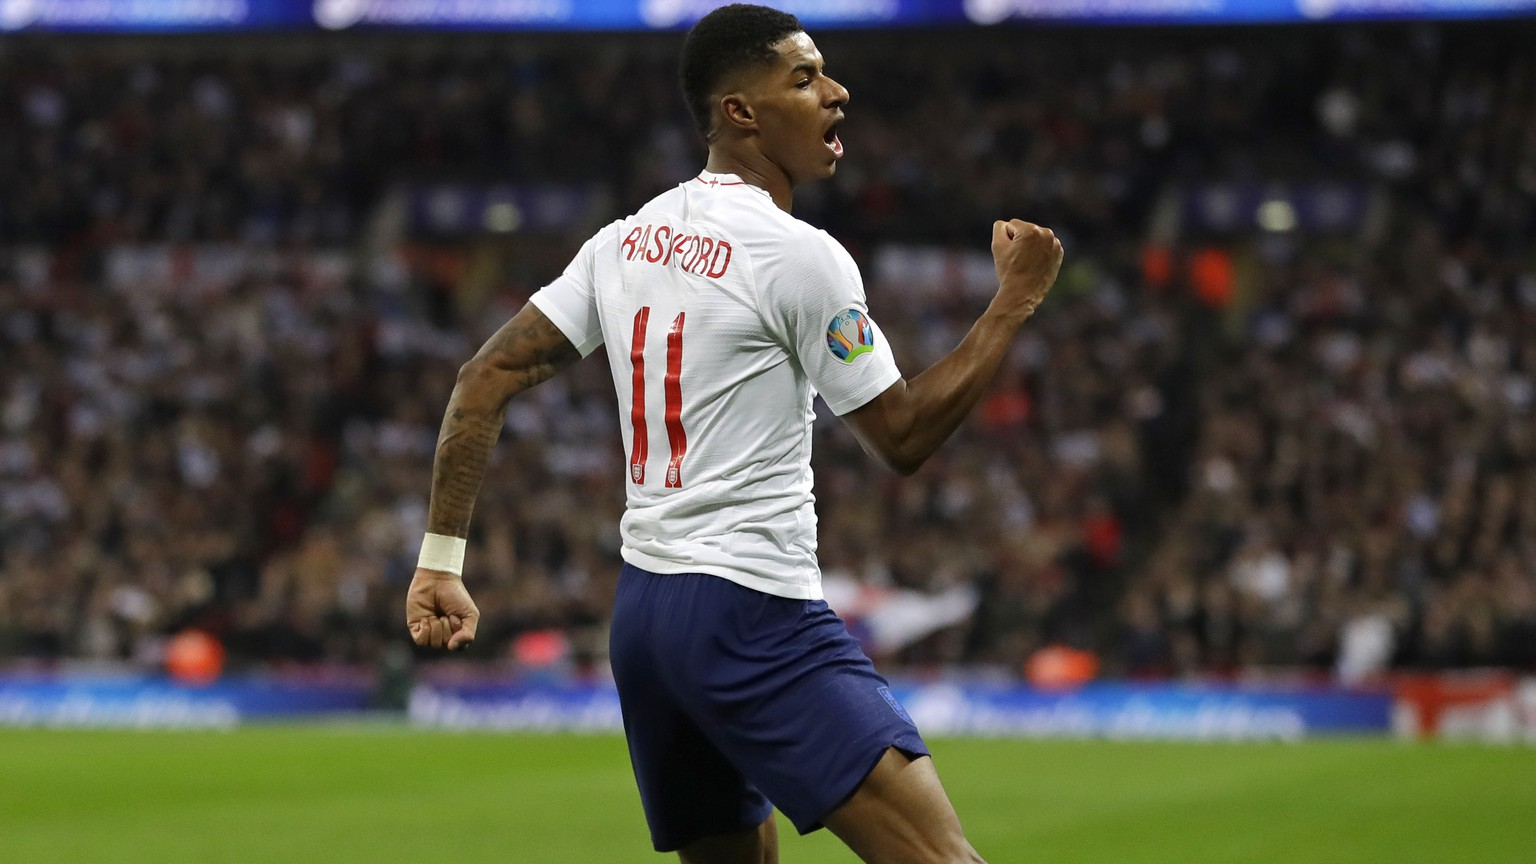 England's Marcus Rashford celebrates scoring his side's fourth goal during the Euro 2020 group A qualifying soccer match between England and Montenegro at Wembley stadium in London, Thursday, Nov. 14, 2019. (AP Photo/Kirsty Wigglesworth)